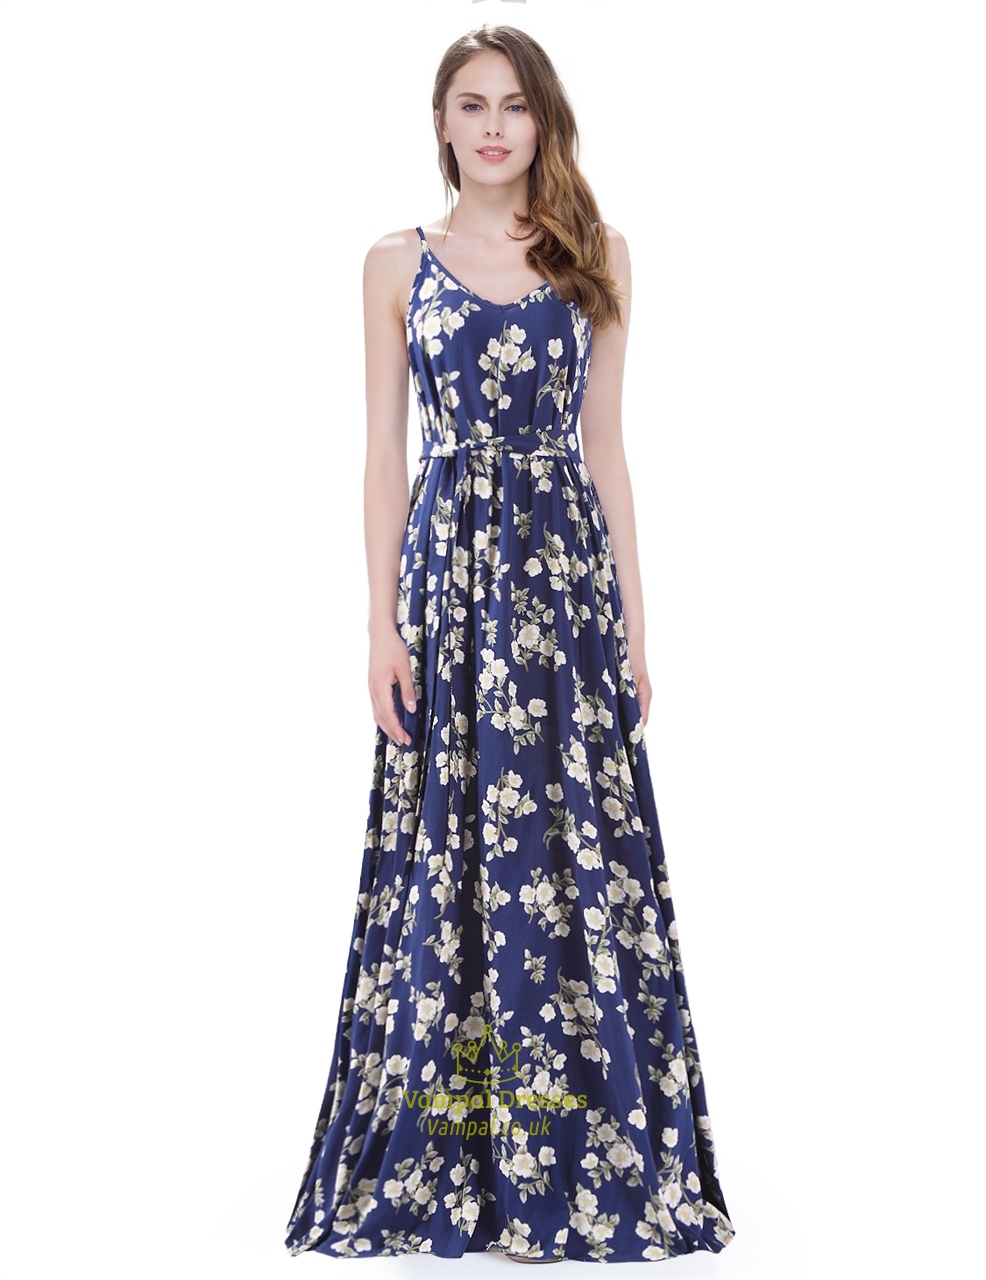 Spaghetti Strap Sleeveless A Line Floor Length Floral Print Long Dress | Vampal Dresses